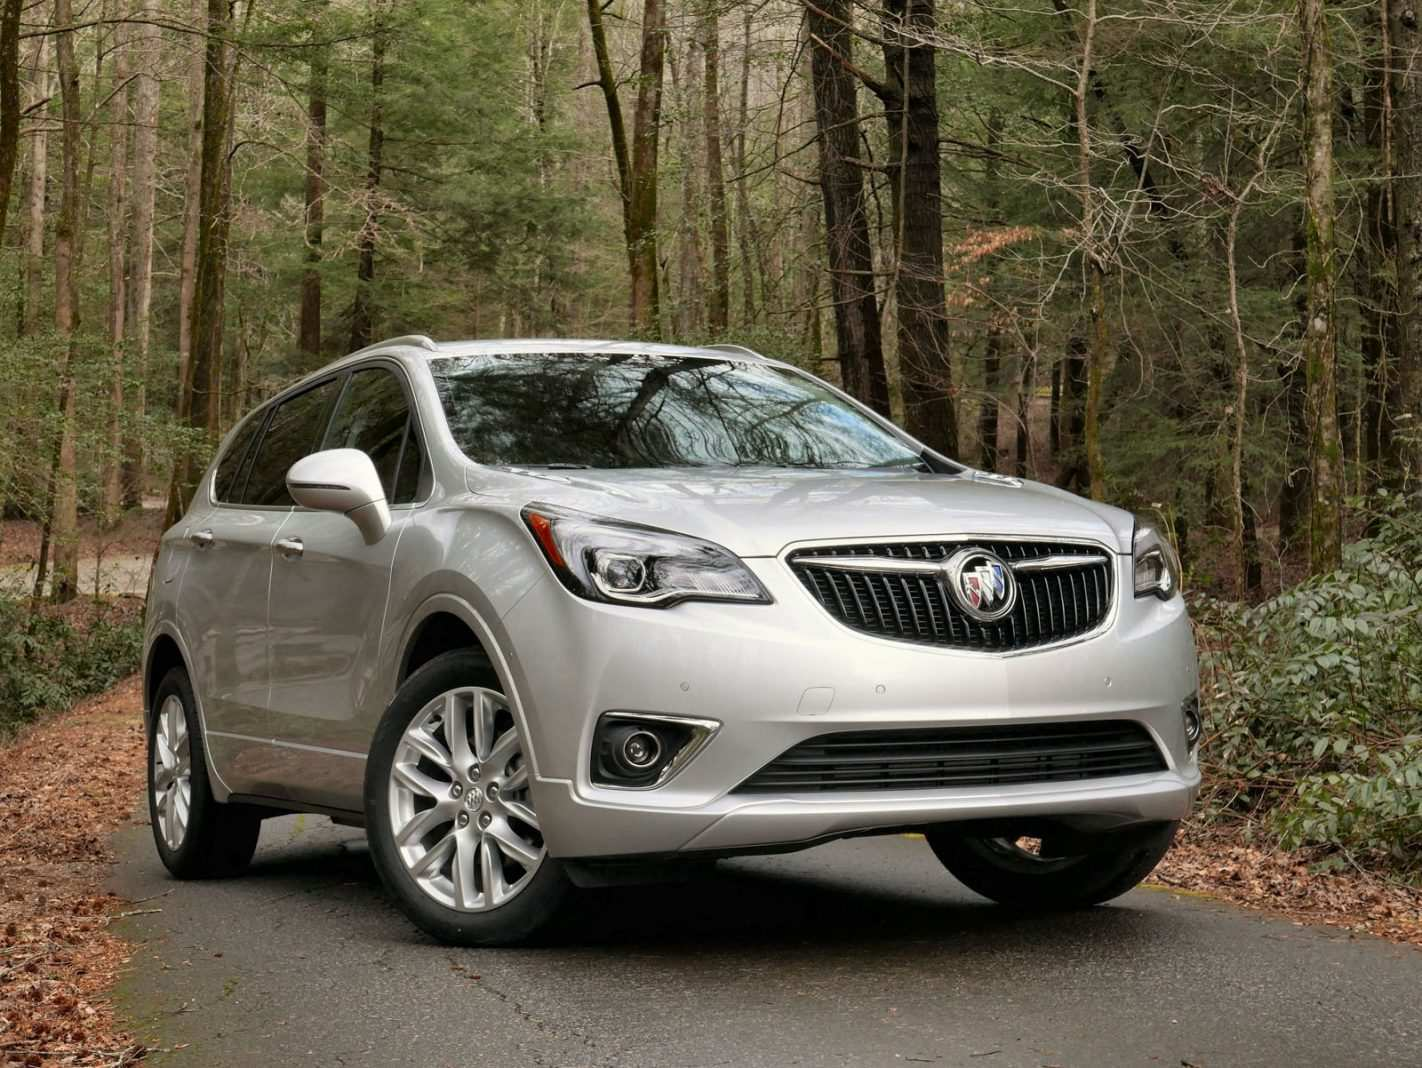 38 Concept of New 2019 Buick Sports Car Redesign Ratings with New 2019 Buick Sports Car Redesign